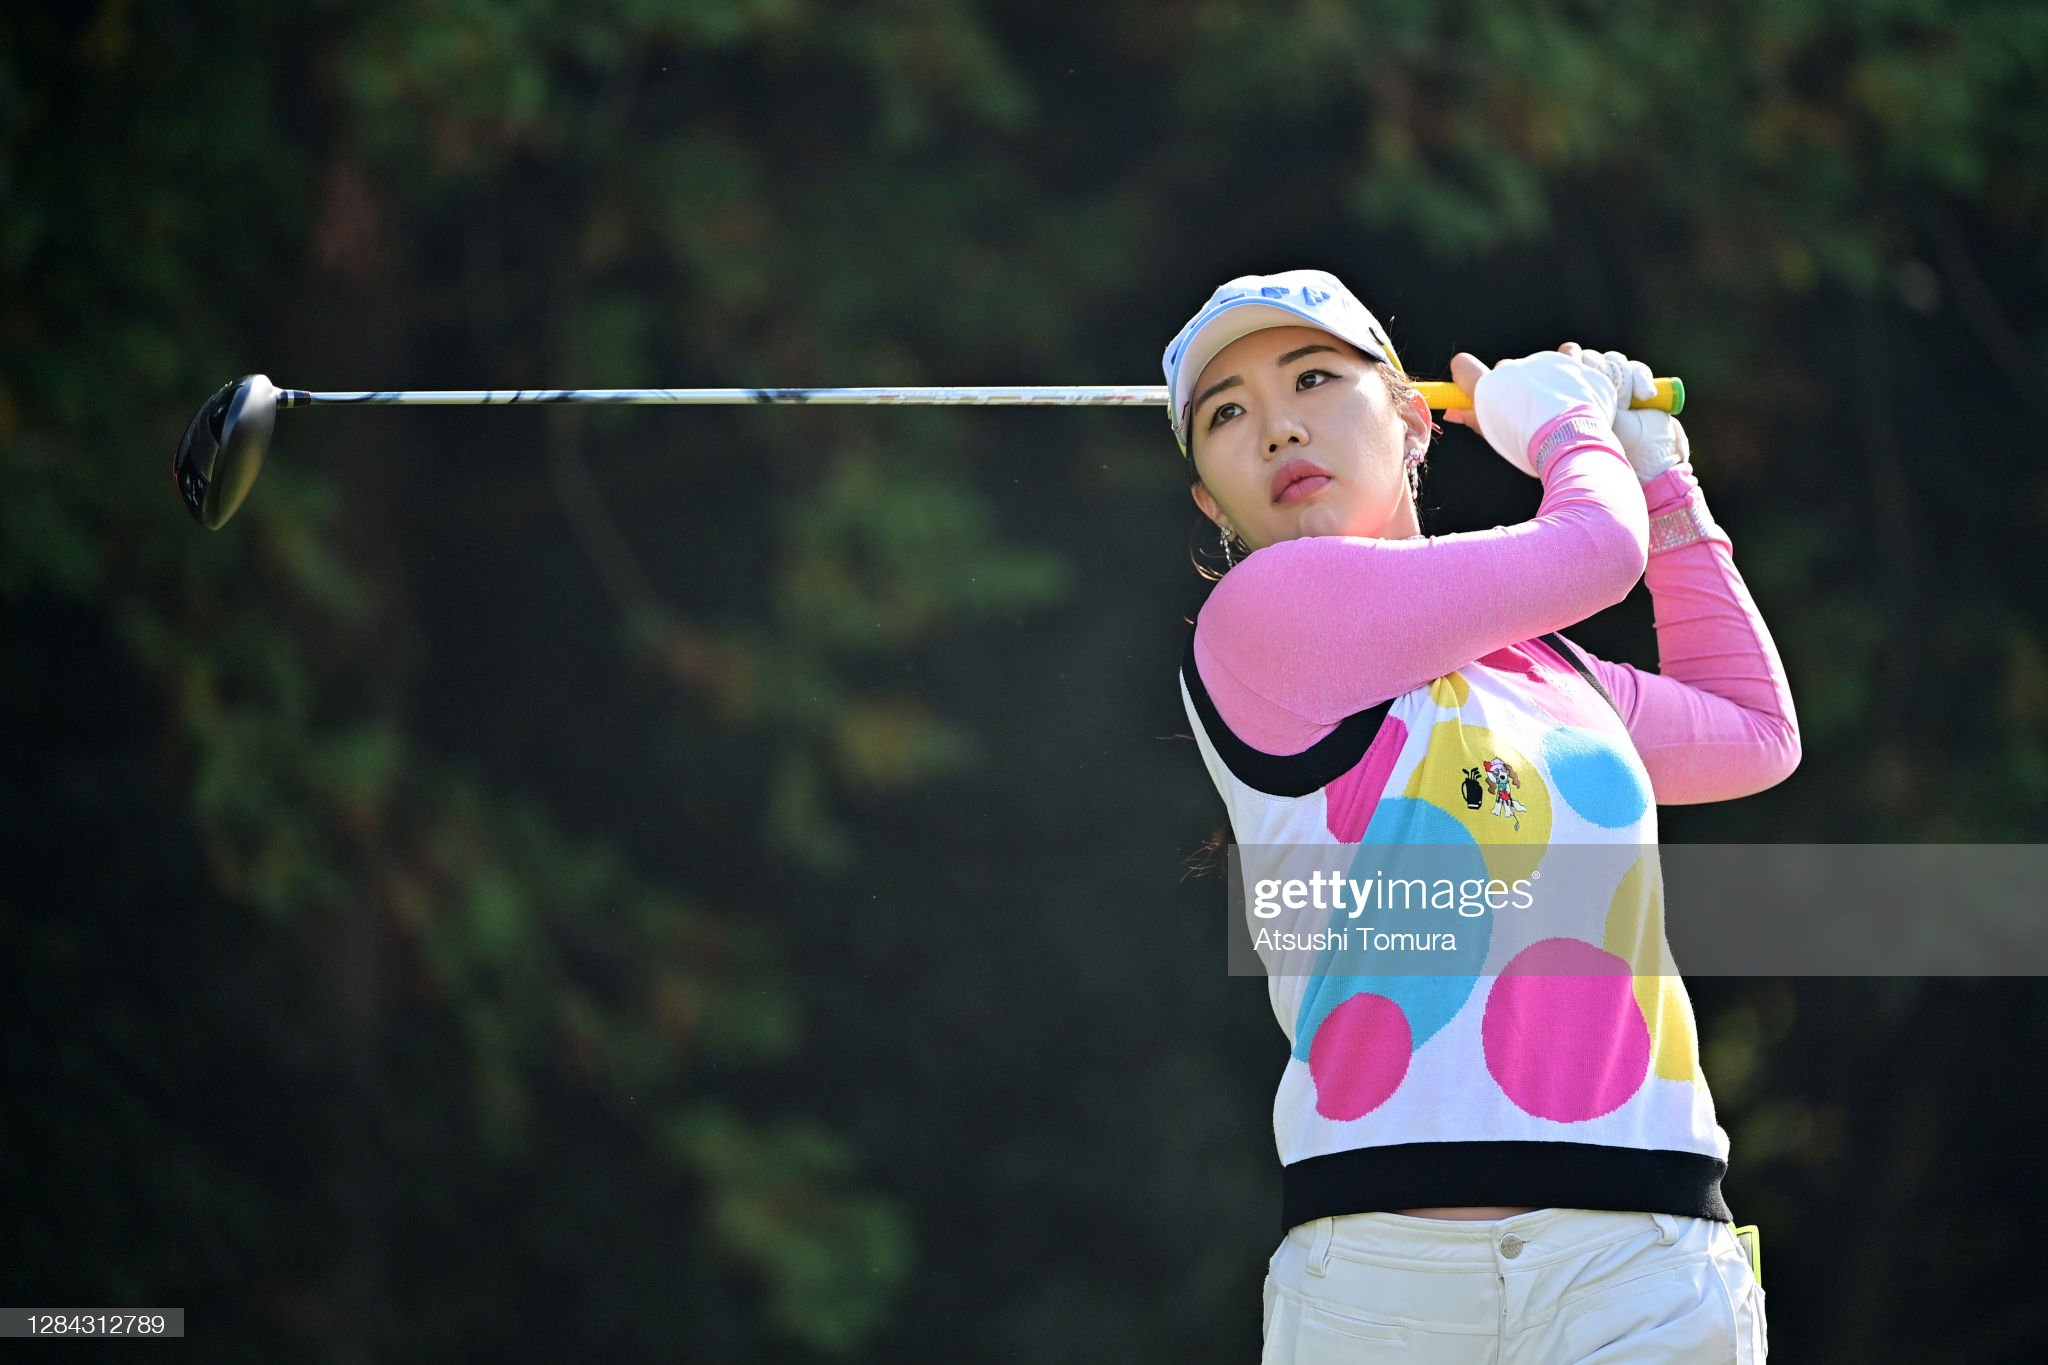 https://media.gettyimages.com/photos/aureum-hwang-of-south-korea-hits-her-tee-shot-on-the-11th-hole-during-picture-id1284312789?s=2048x2048